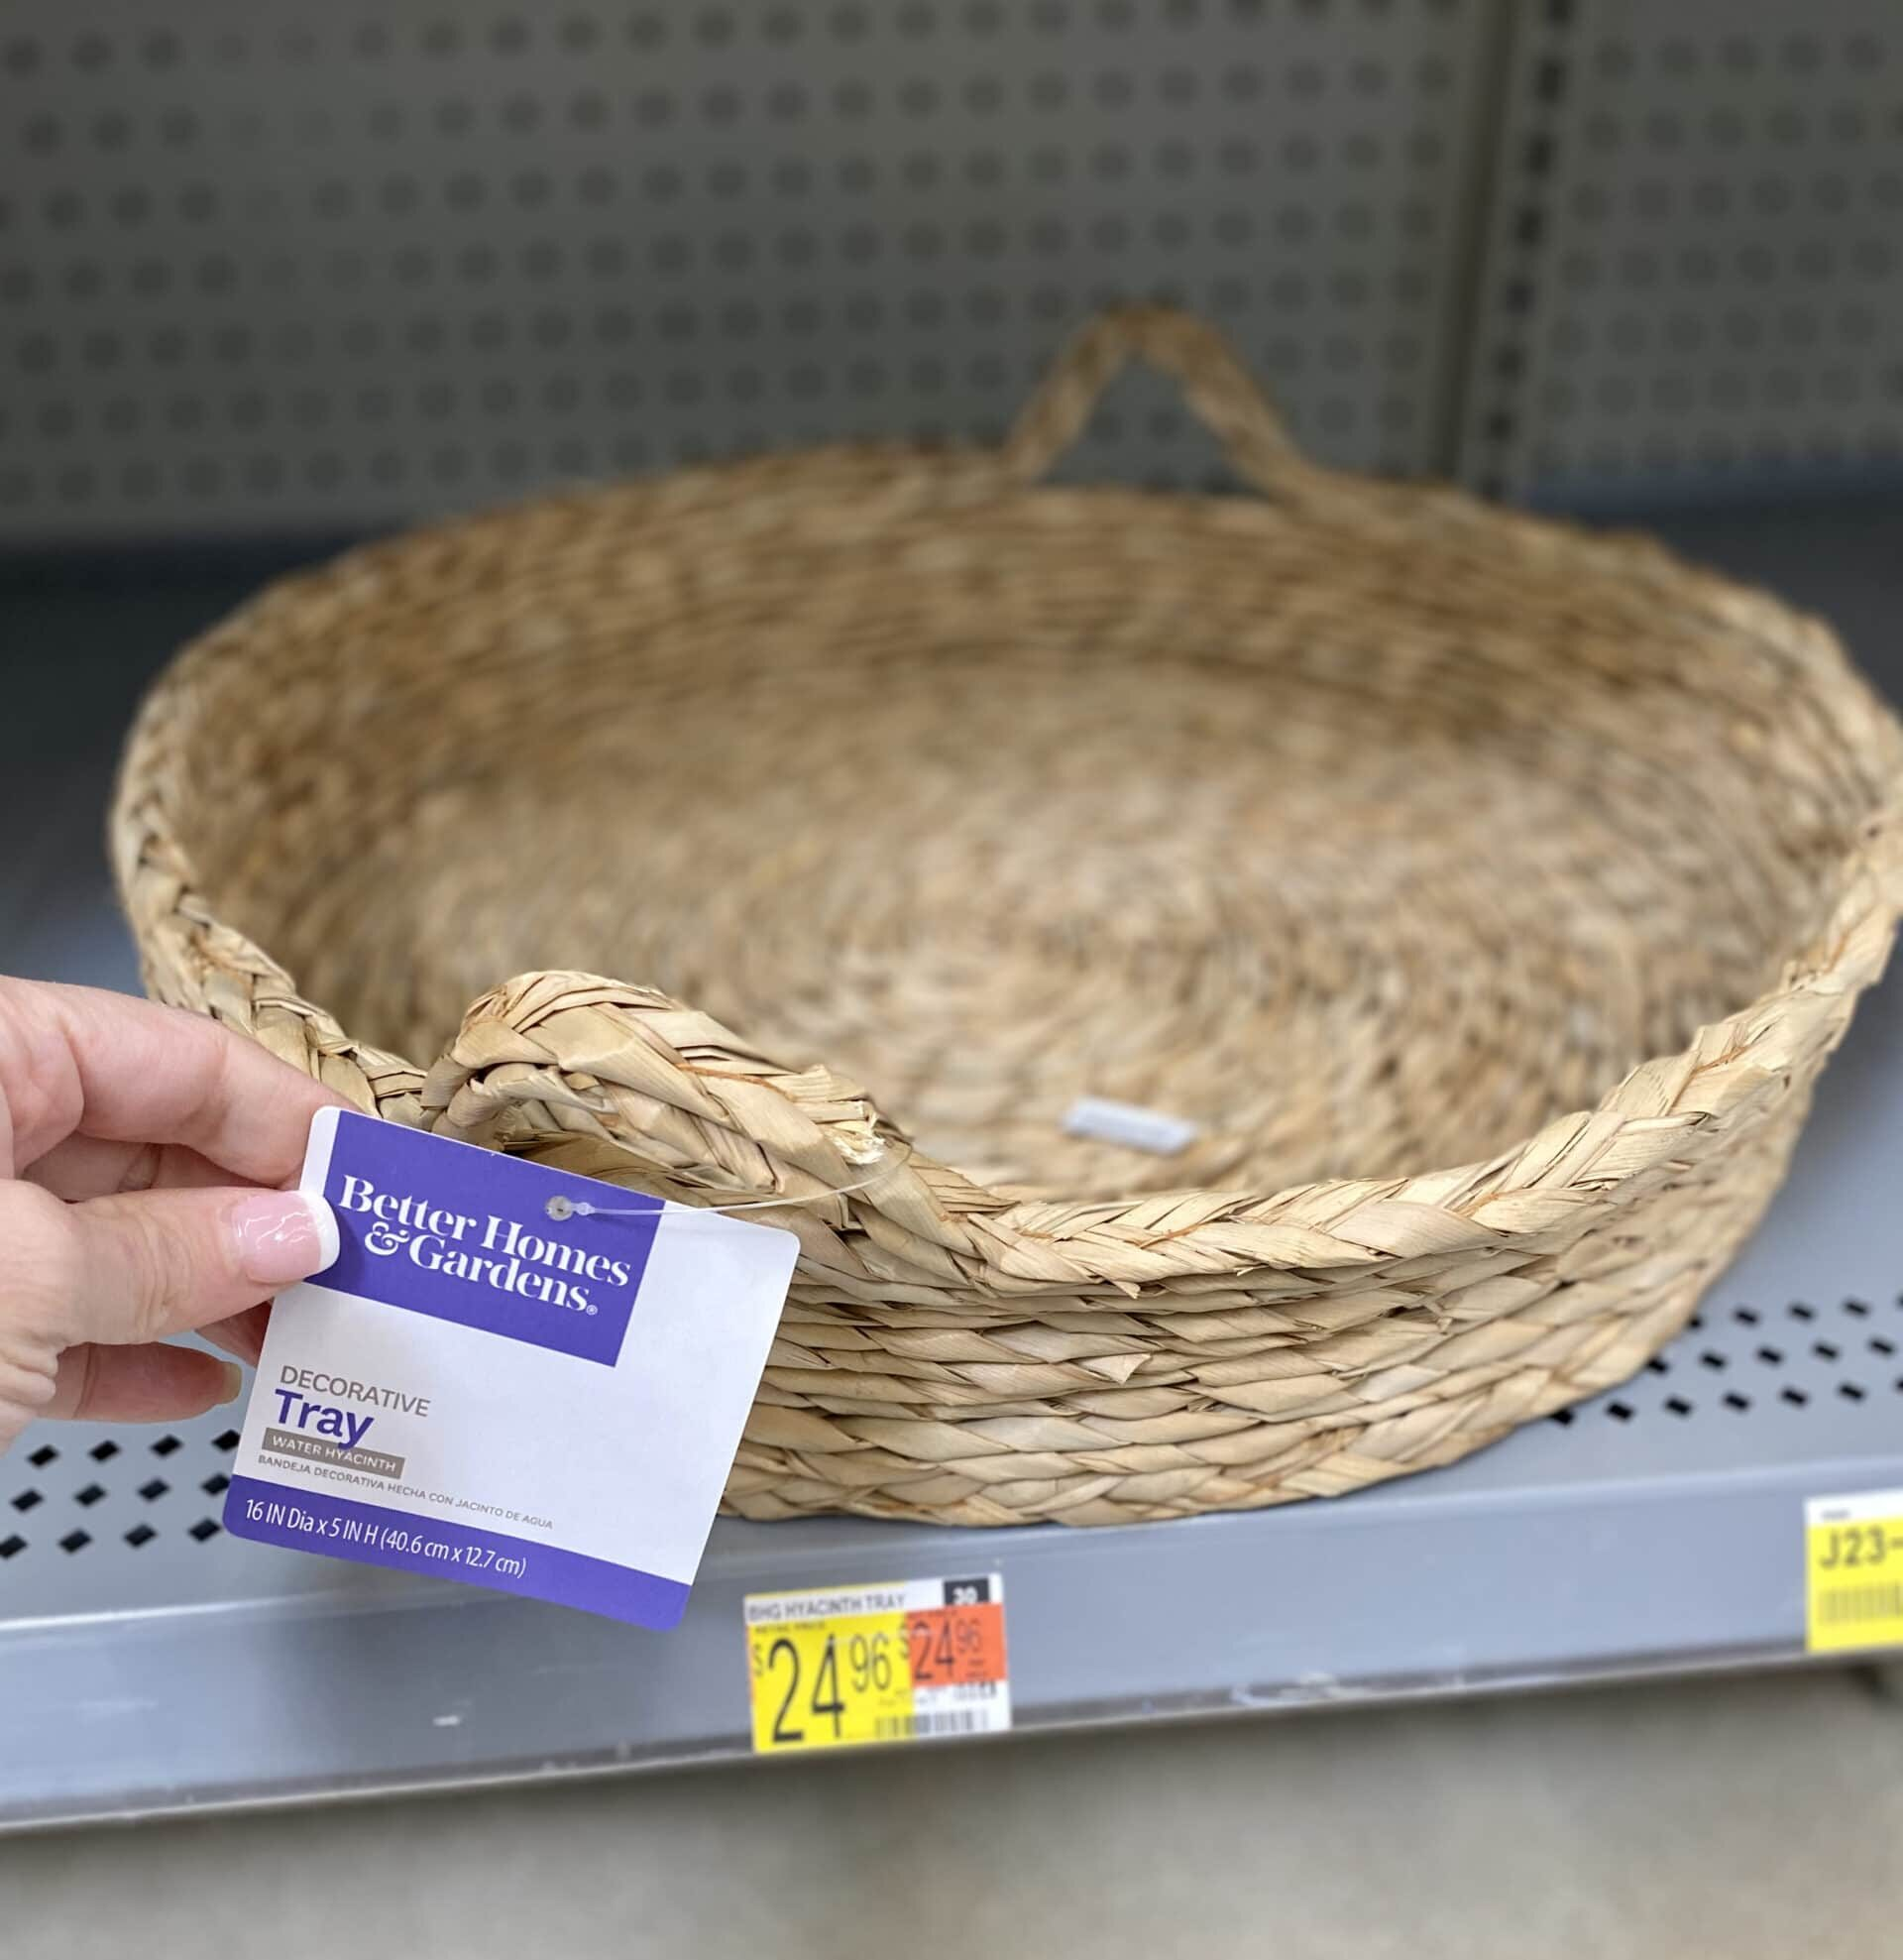 walmart decor tray